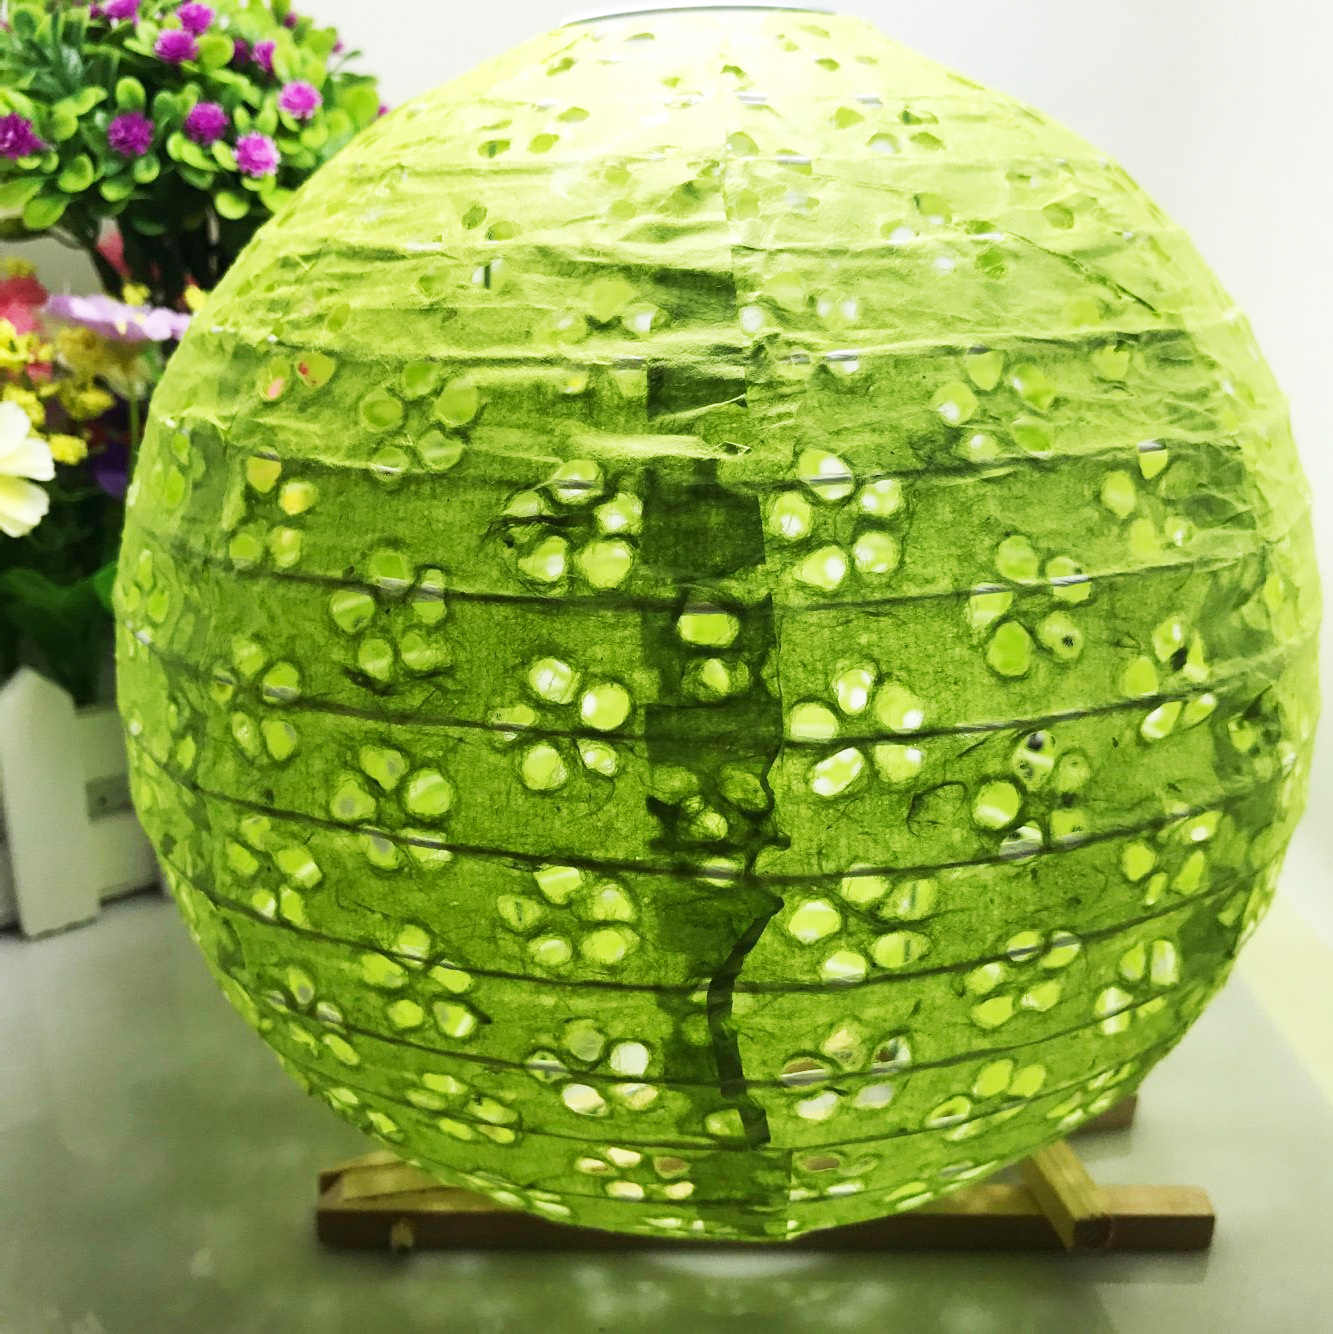 Nes Chinese Festival Supplies Green Lace like Hollow Paper Lanterns For Party and Wedding Decoration Hanging Paper Ball 4 sizes